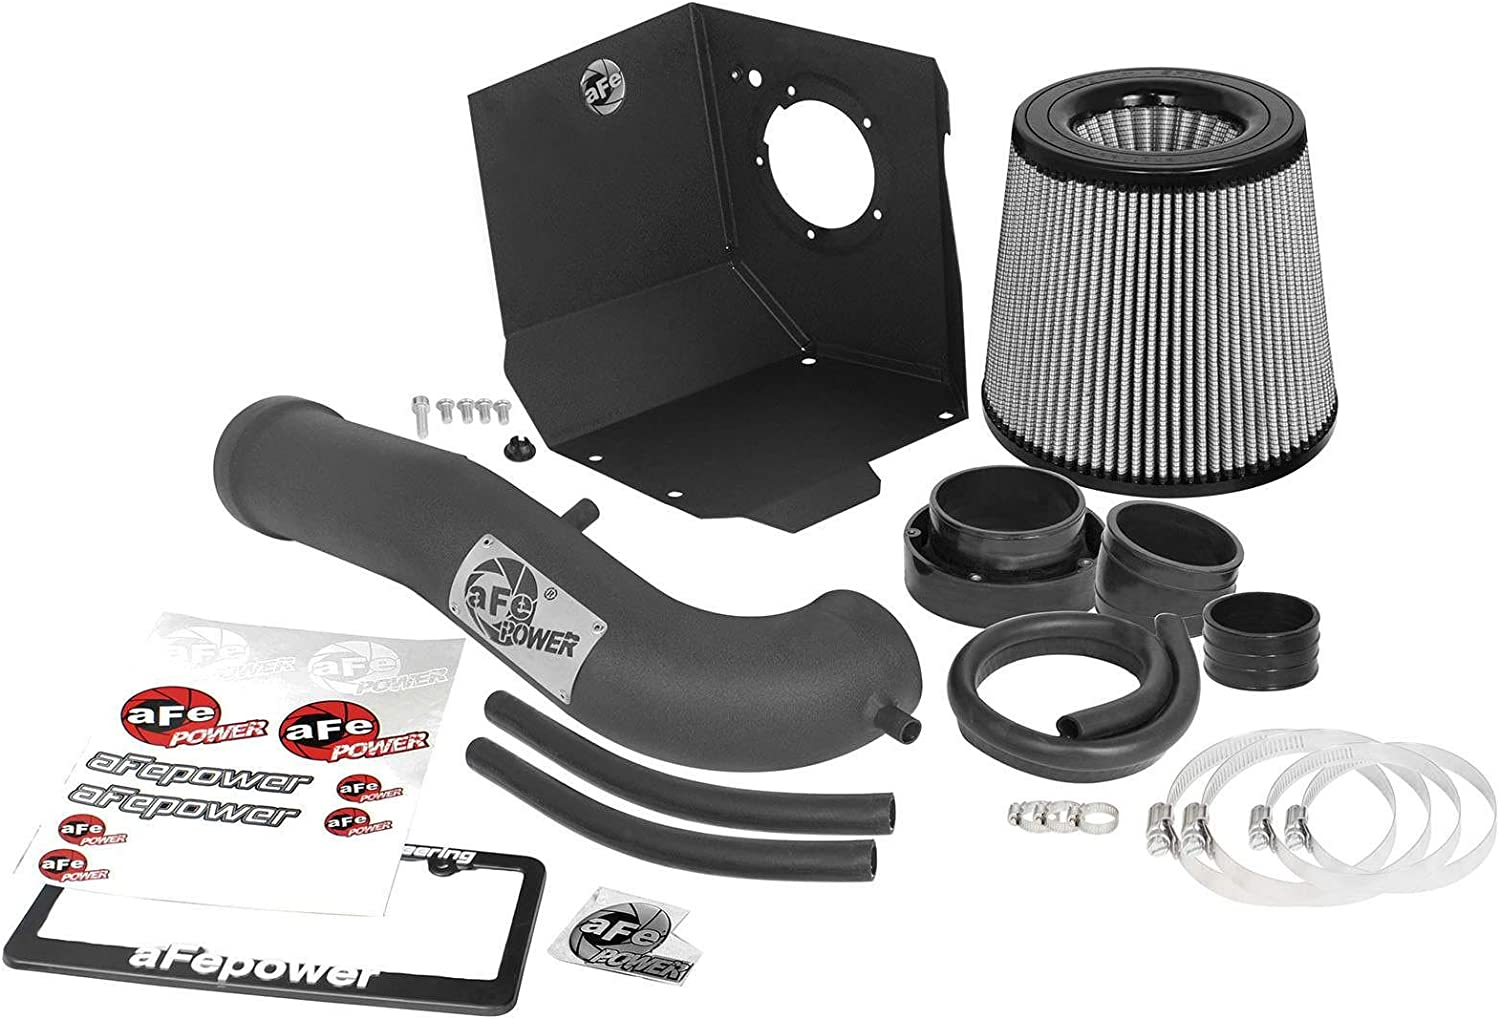 Non-CARB Compliant aFe Power 51-12332-GR Magnum FORCE Performance Air Intake System